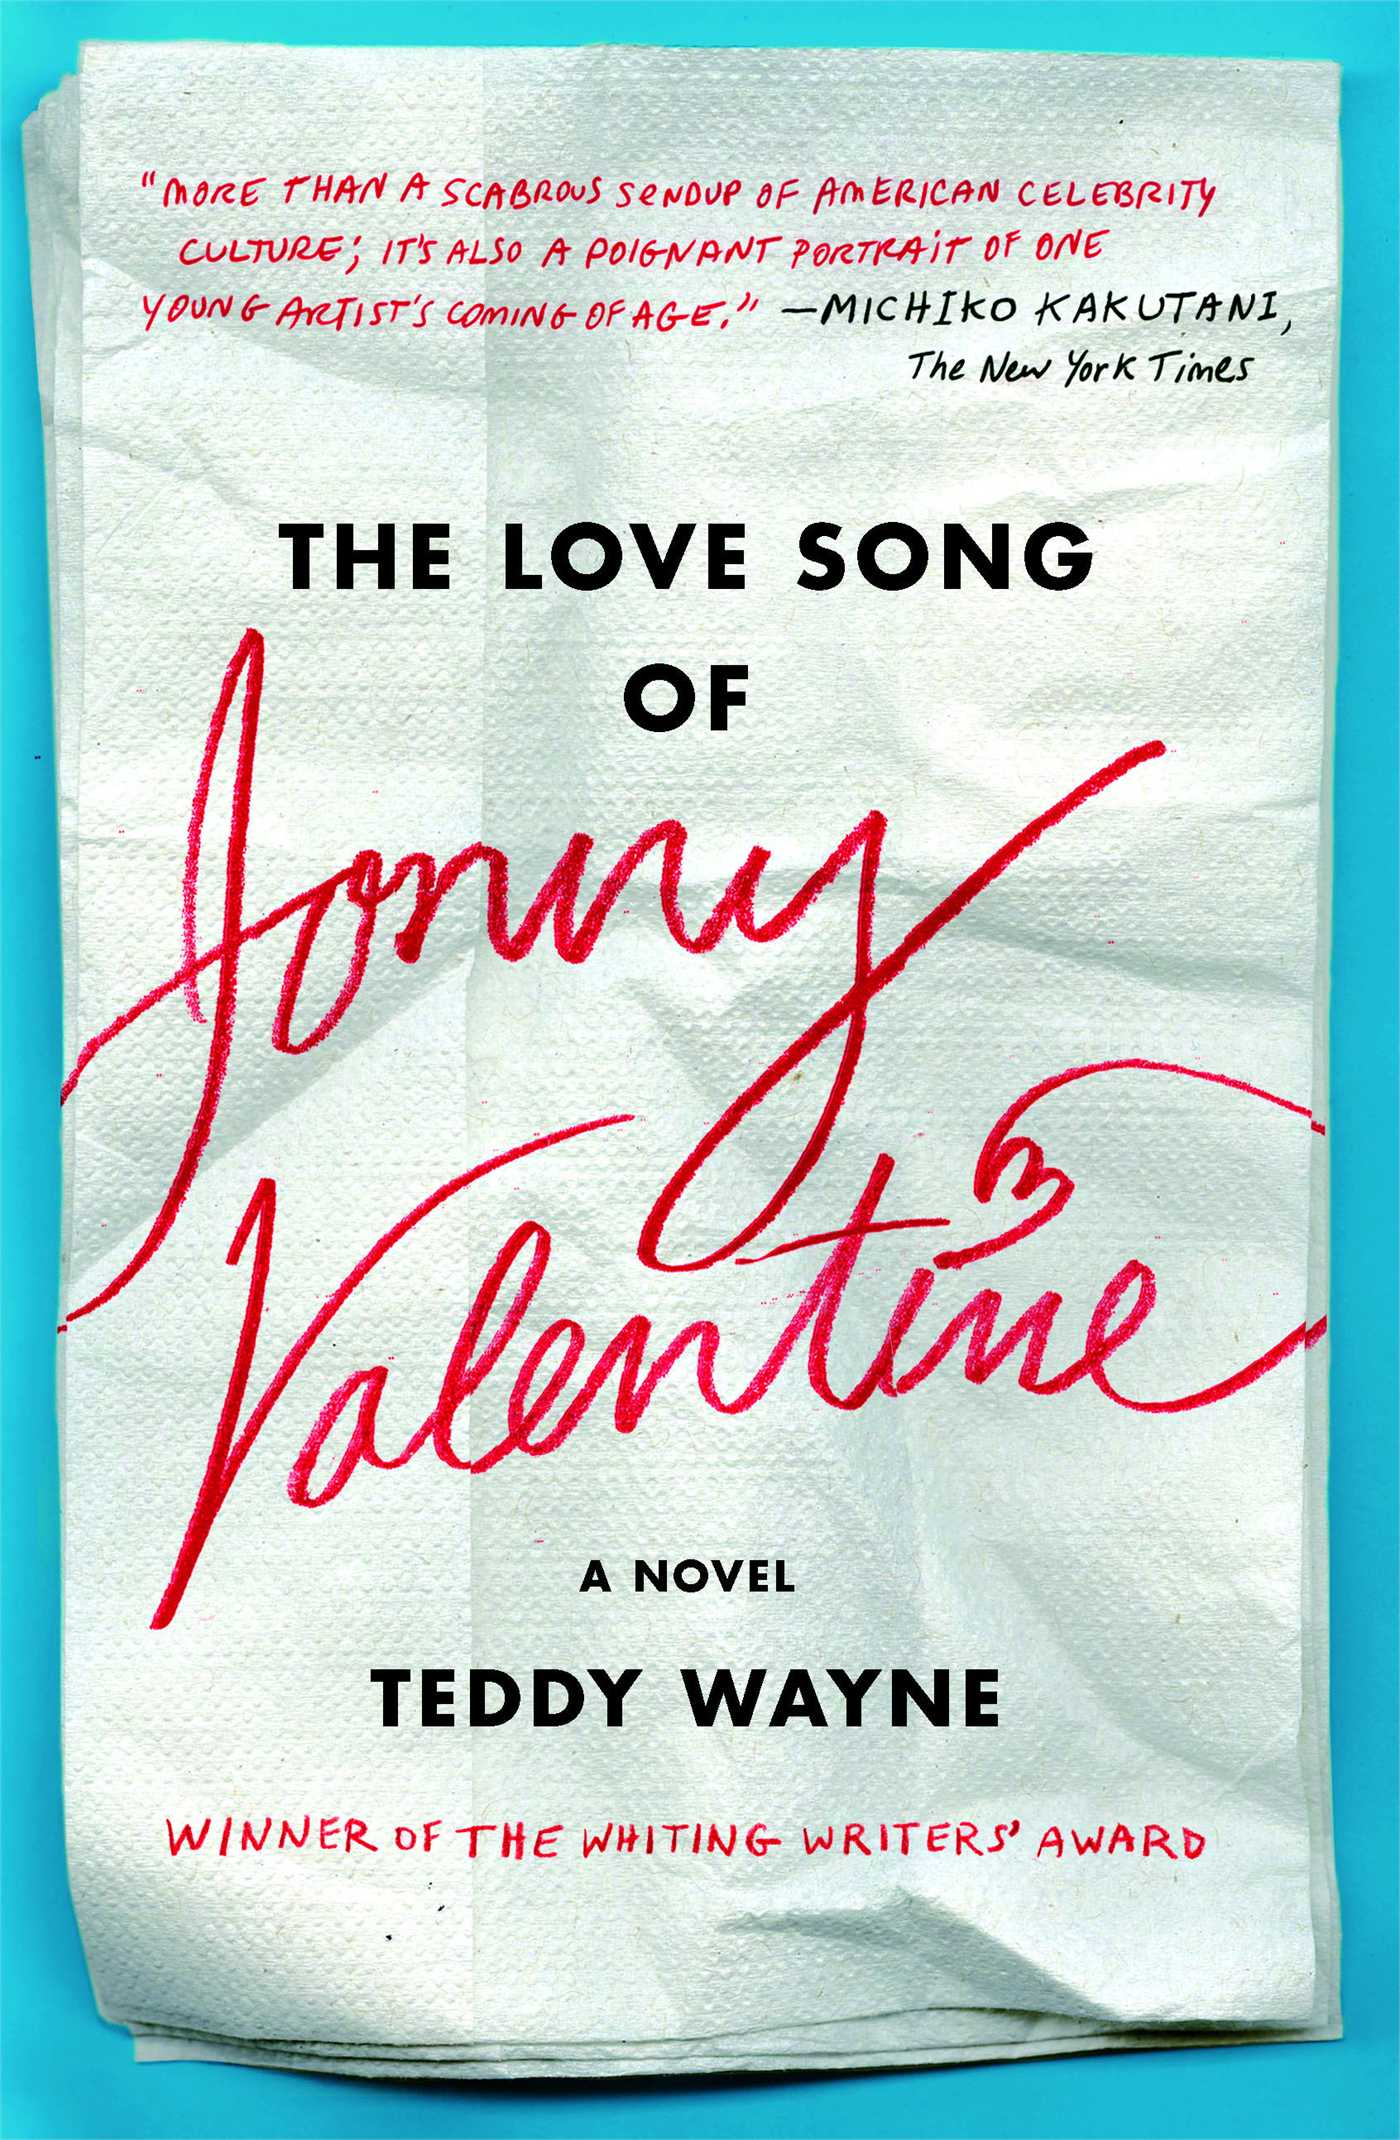 Love-song-of-jonny-valentine-9781476705866_hr